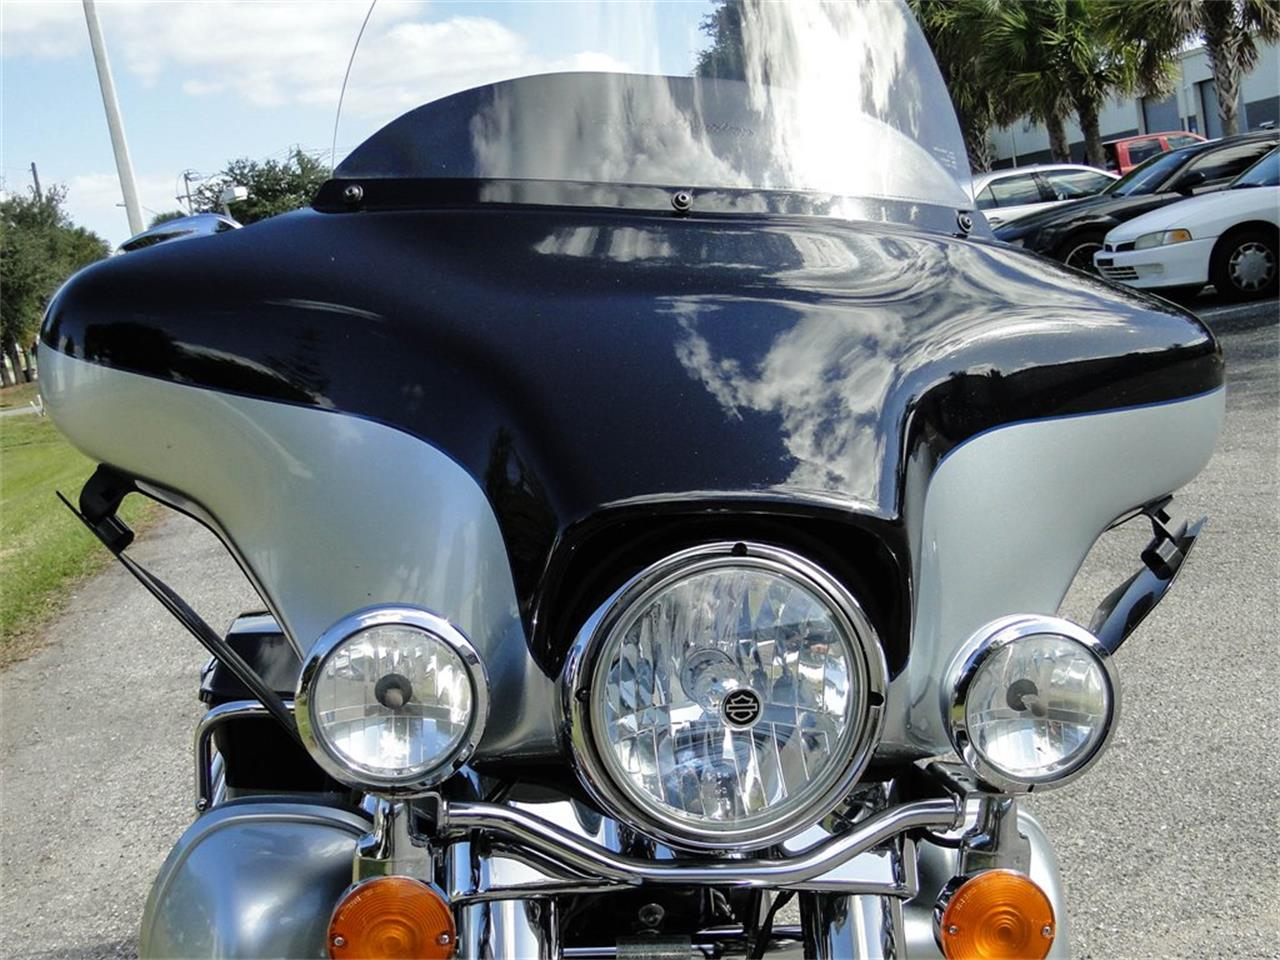 2013 Harley-Davidson Electra Glide (CC-1314382) for sale in Palmetto, Florida